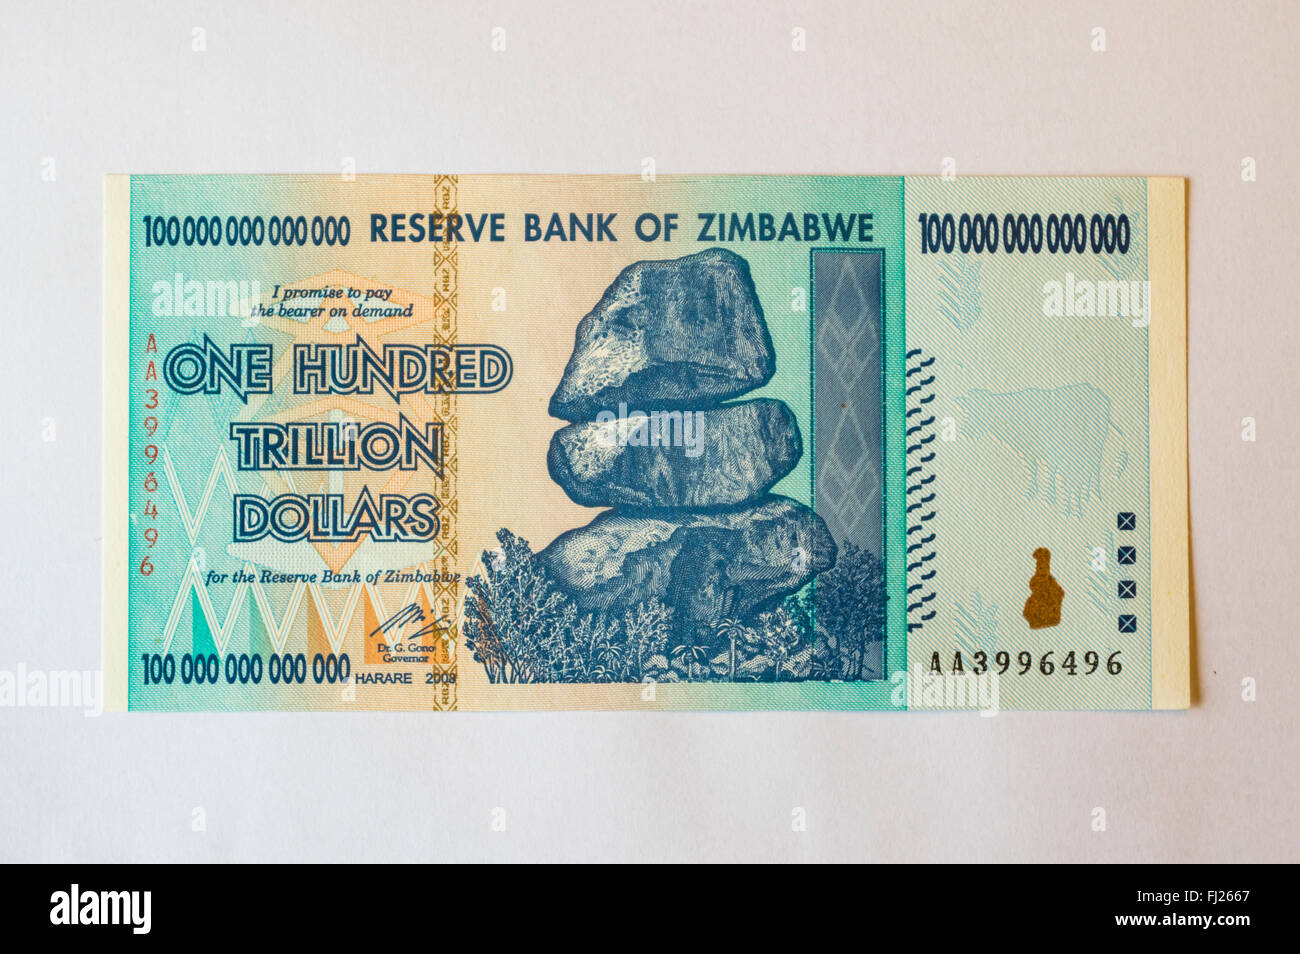 One hundred trillion dollars banknote issued in Zimbabwe in 2008, on the climax of the hyperinflation. White background. - Stock Image